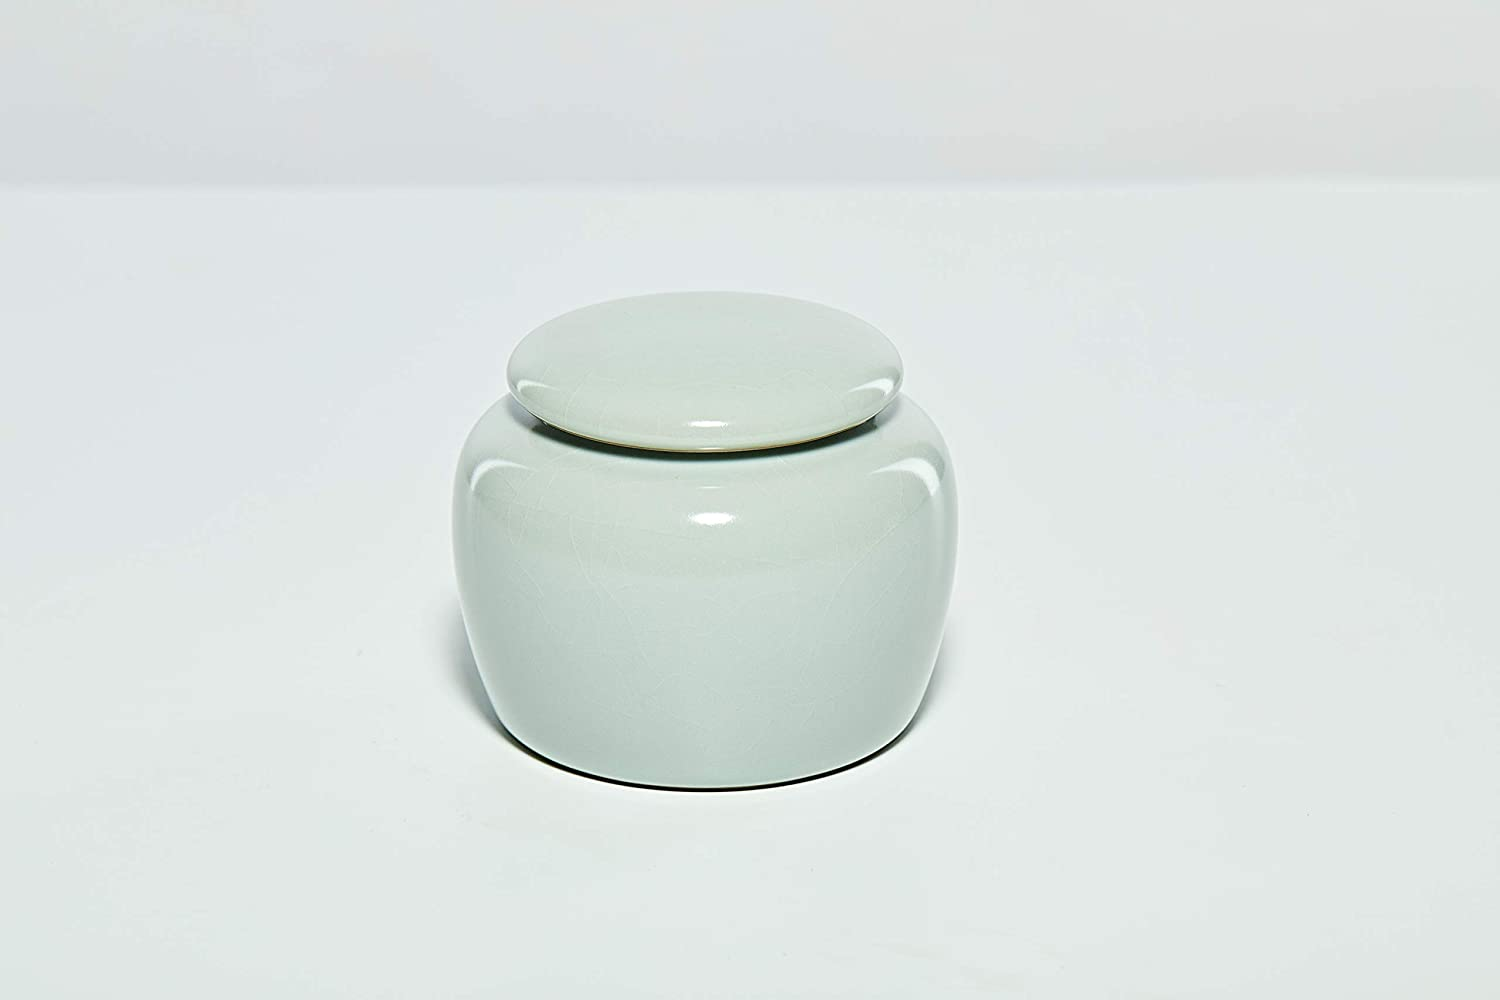 YASI Celadon Bargain Porcelain Tea Container Leaves Storage Courier shipping free shipping Canister